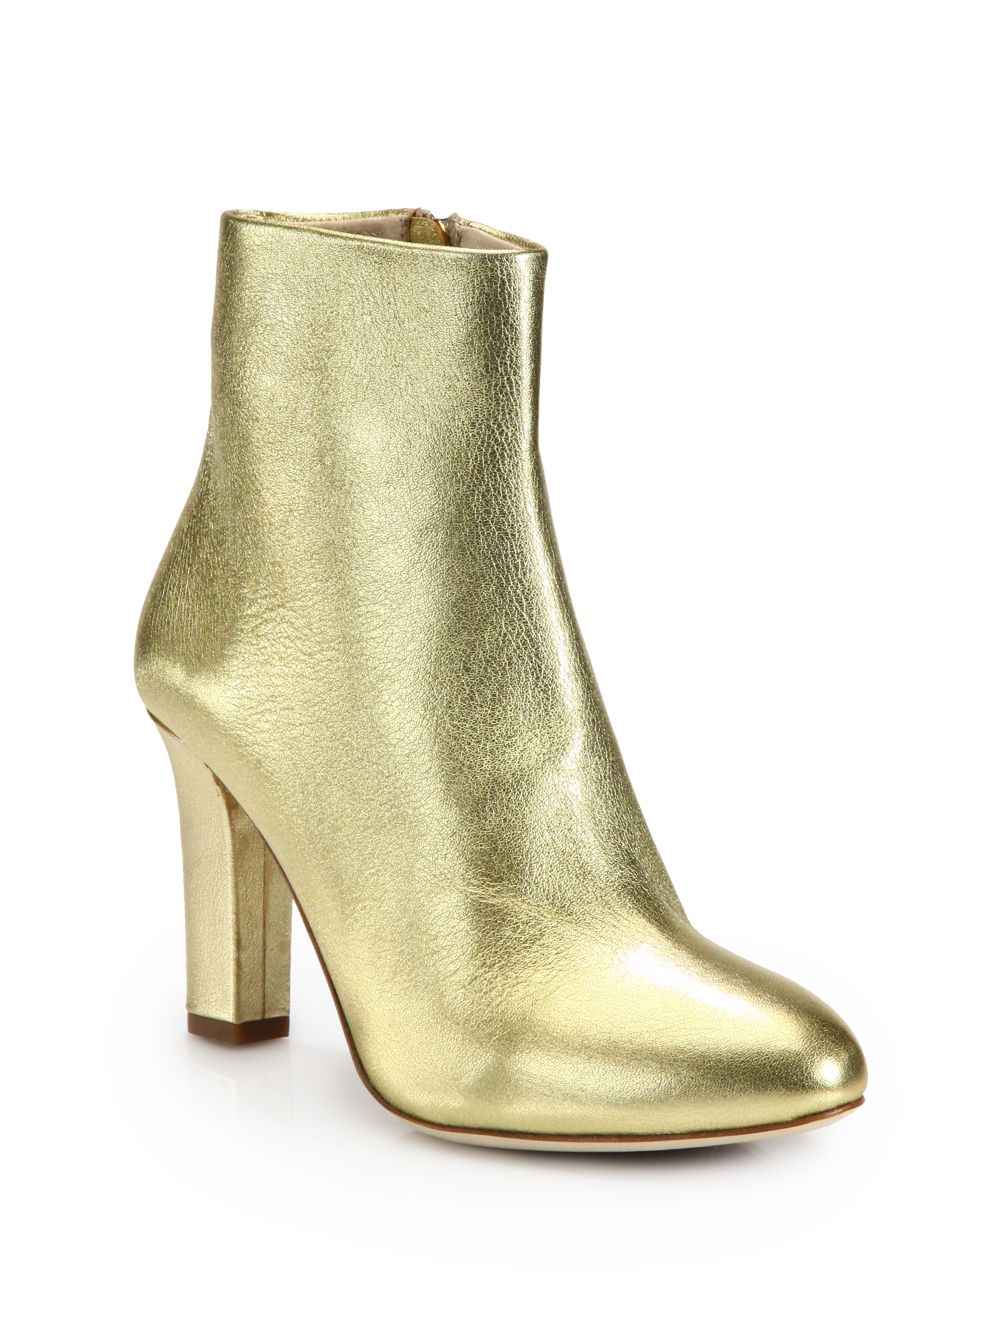 Metallic Leather Boots : Lyst jerome c rousseau metallic leather ankle boots in